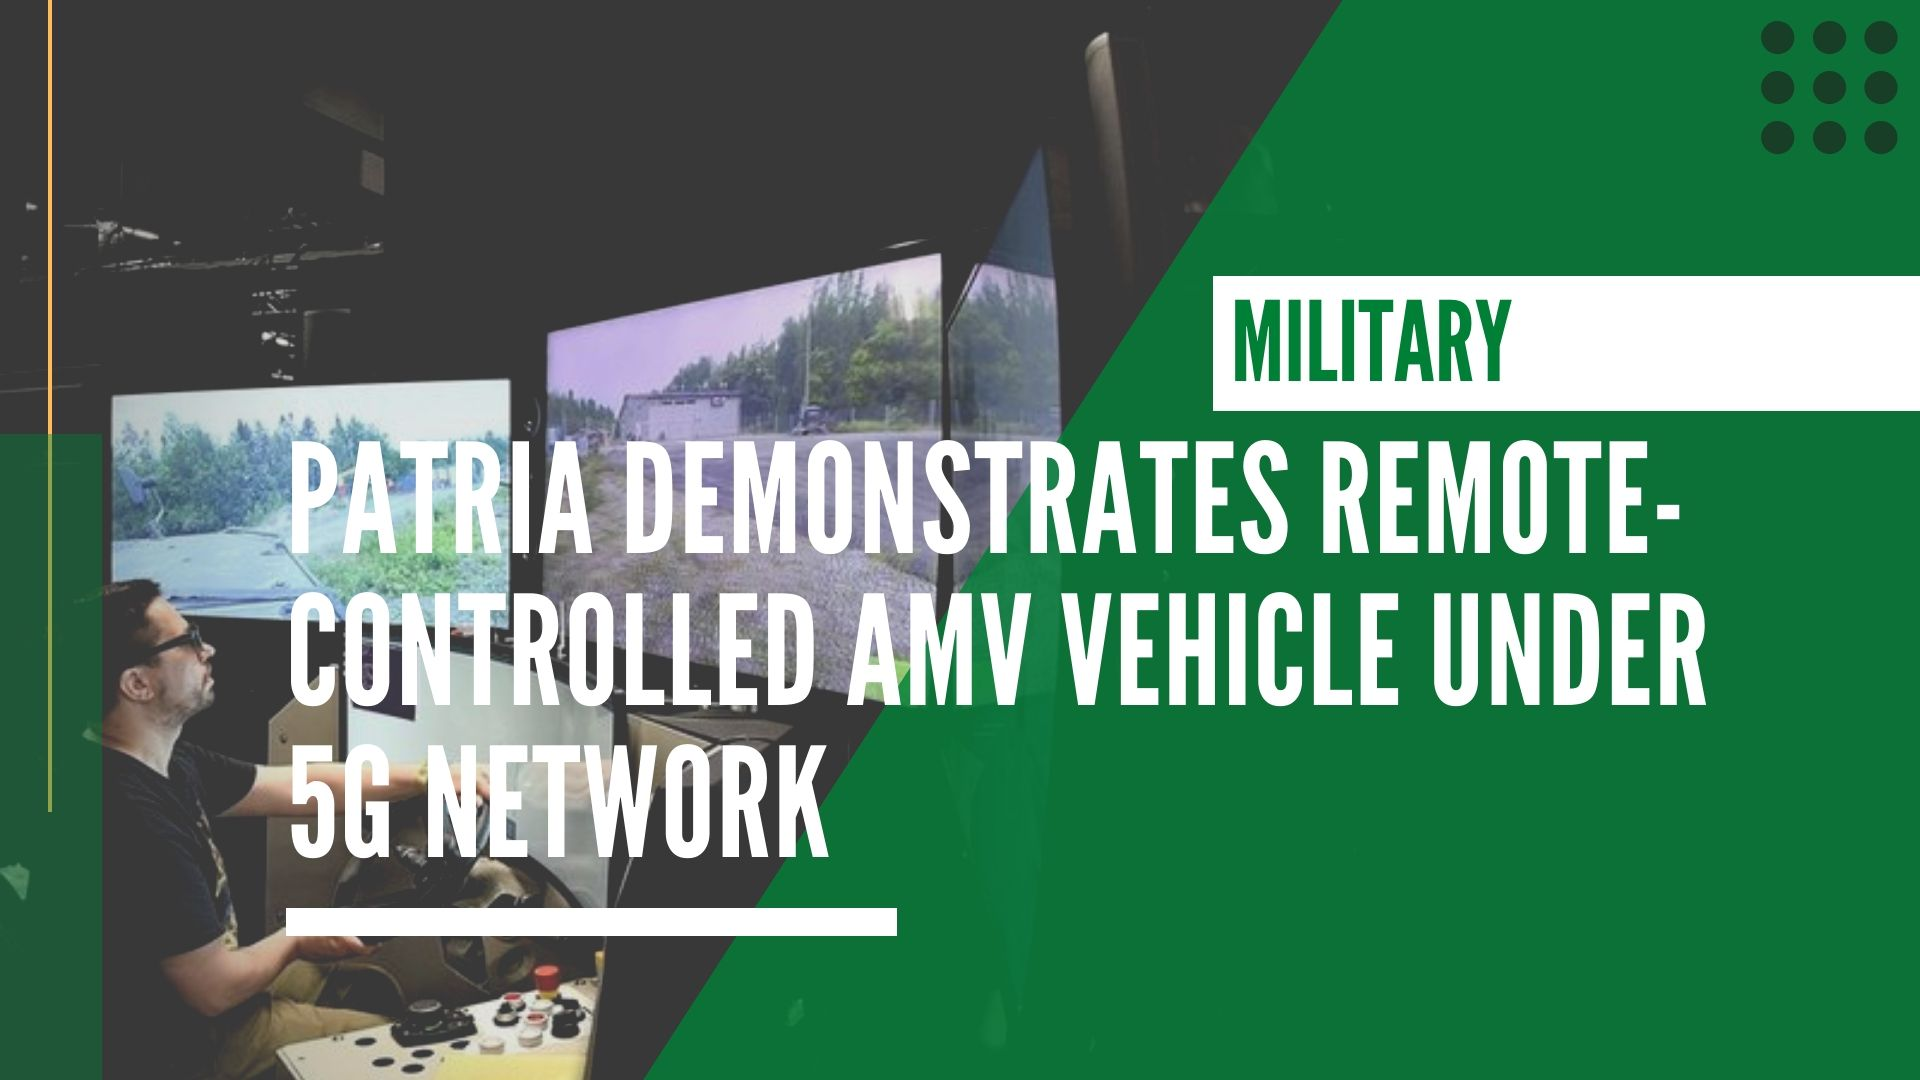 Patria demonstrates advanced remote-controlled AMV 8×8 vehicle under 5G network